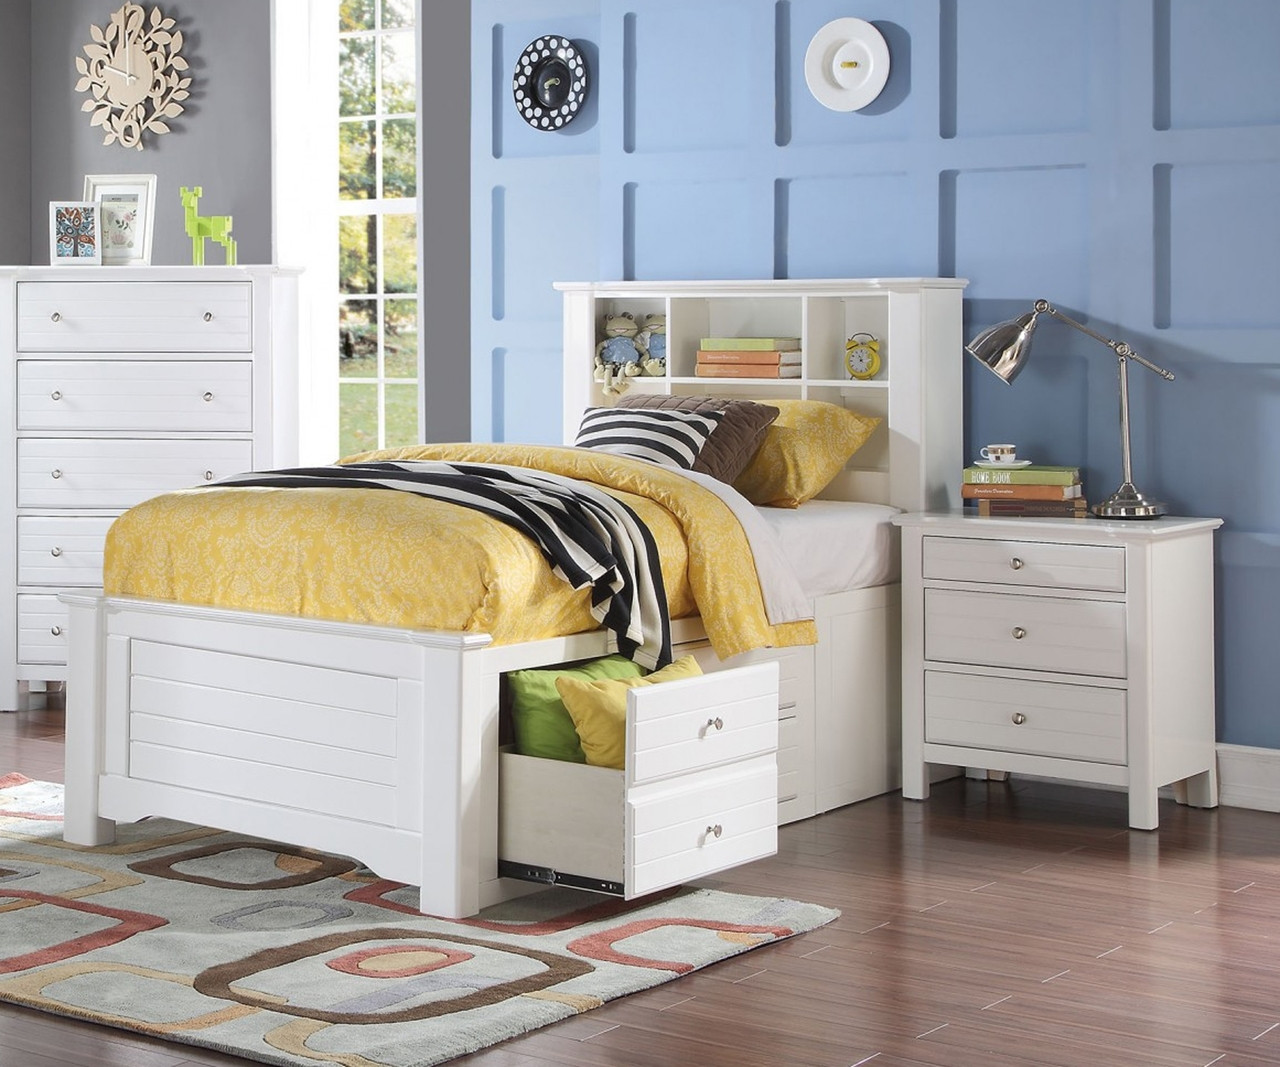 Mallowsea Twin Size Bookcase Storage Bed In White Finish 30420t Acme Furniture Kids And Teens Bedroom Furniture